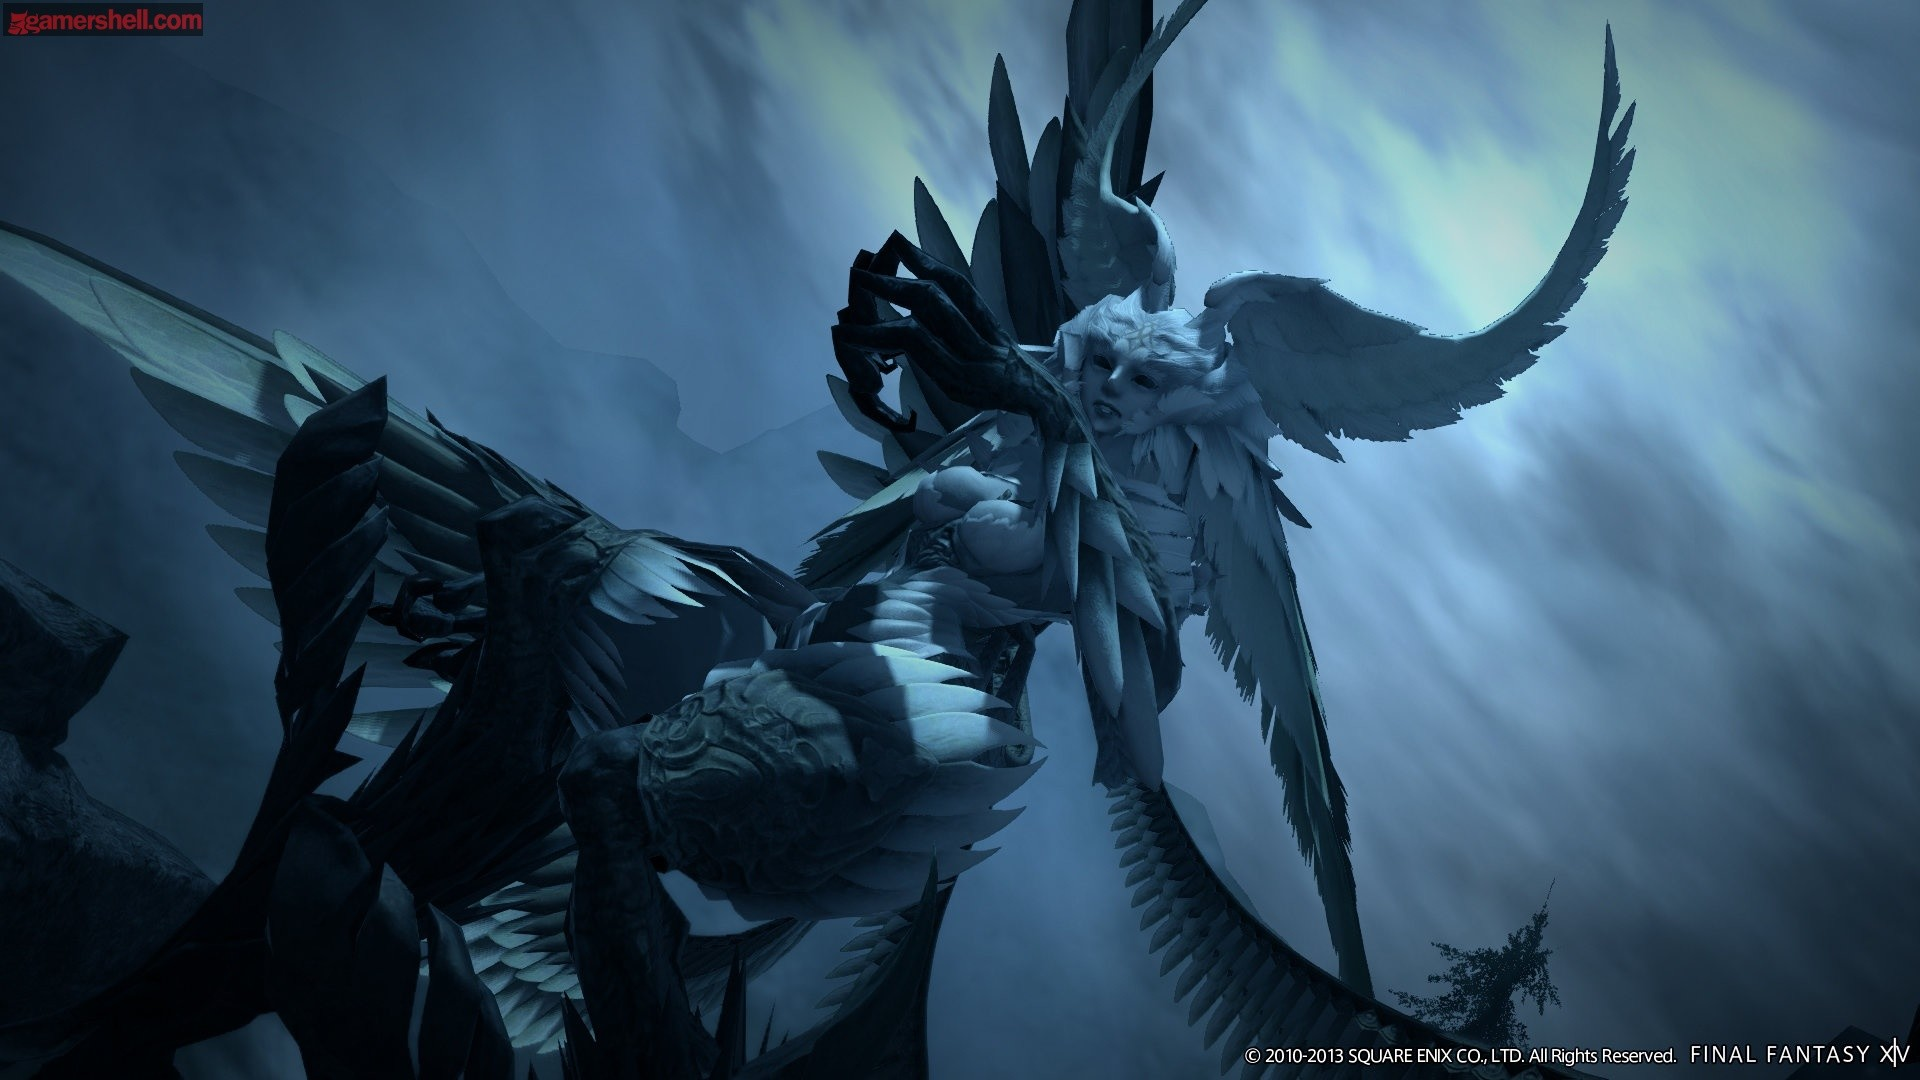 Final Fantasy Xiv Backgrounds Posted By Zoey Anderson